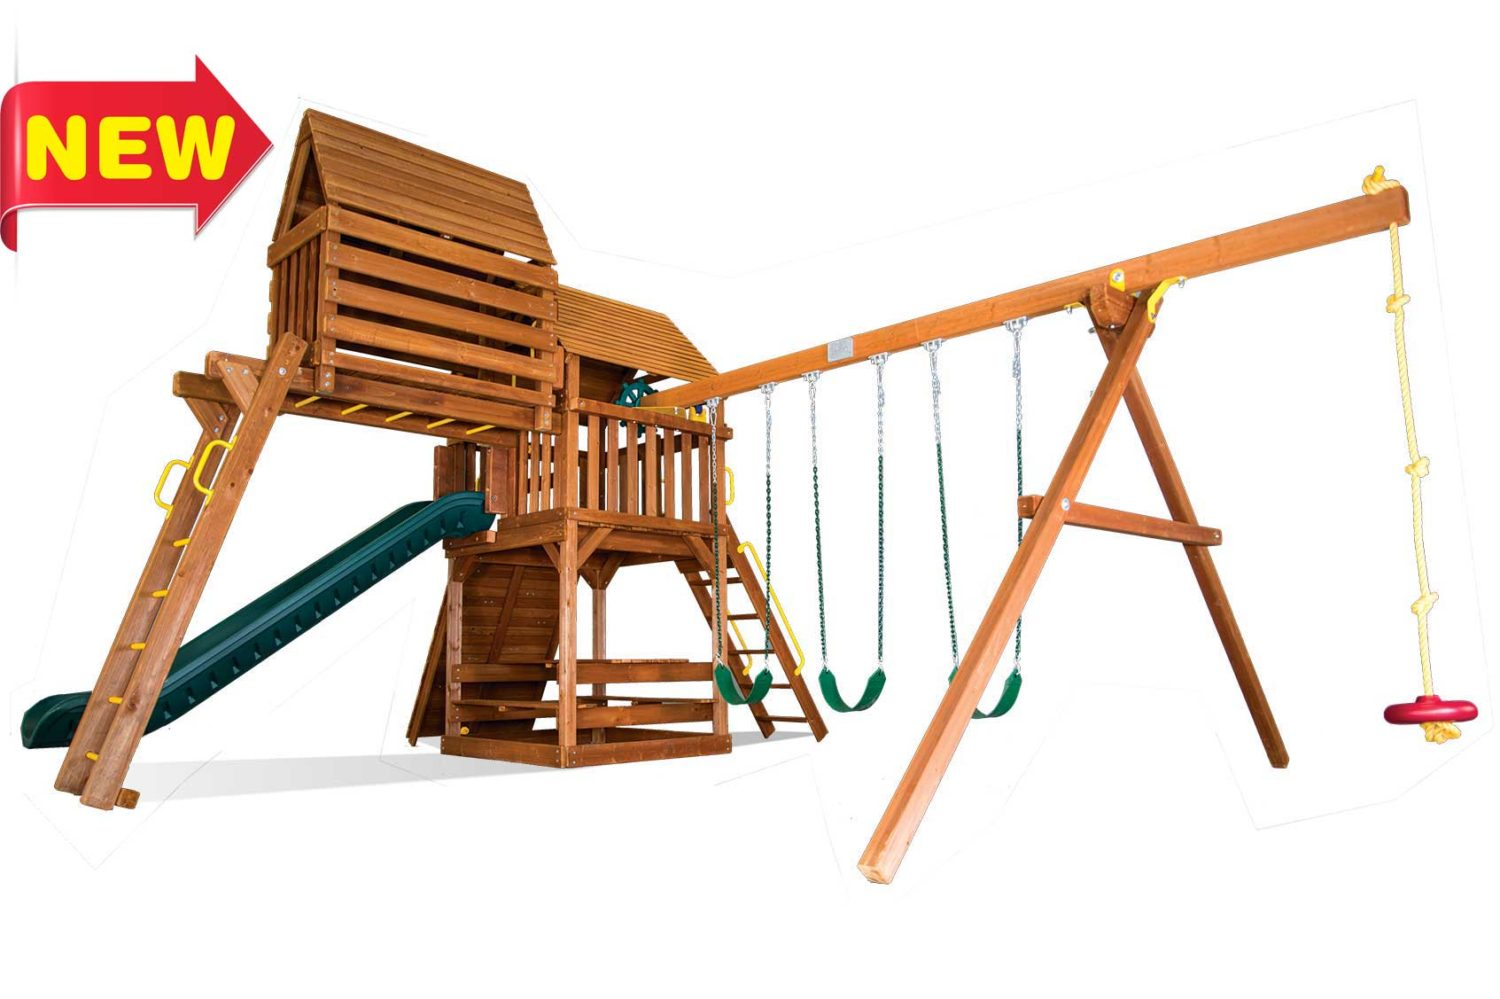 Fiesta Clubhouse Pkg IV Wooden Swing Sets